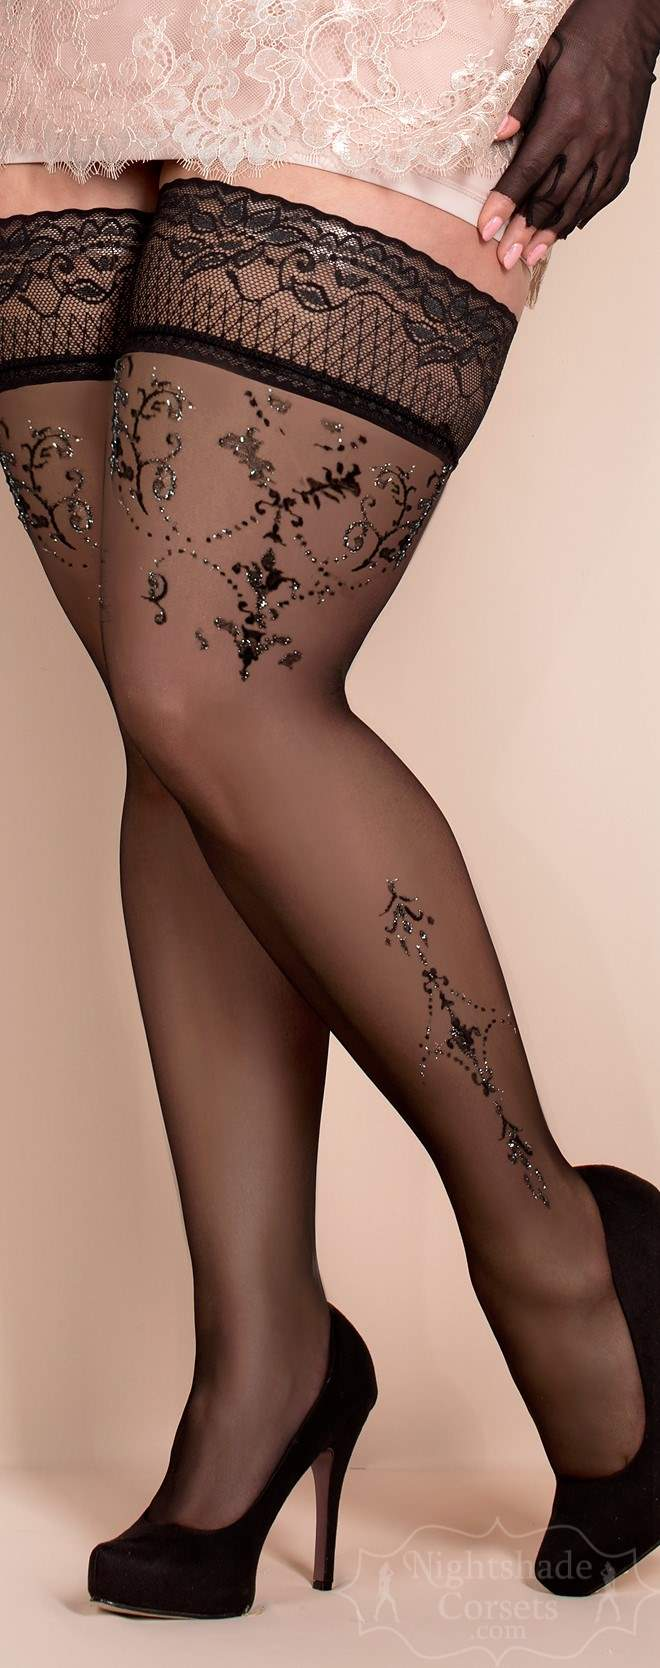 European-made stay-up stockings silicone top 0371 Edmonton